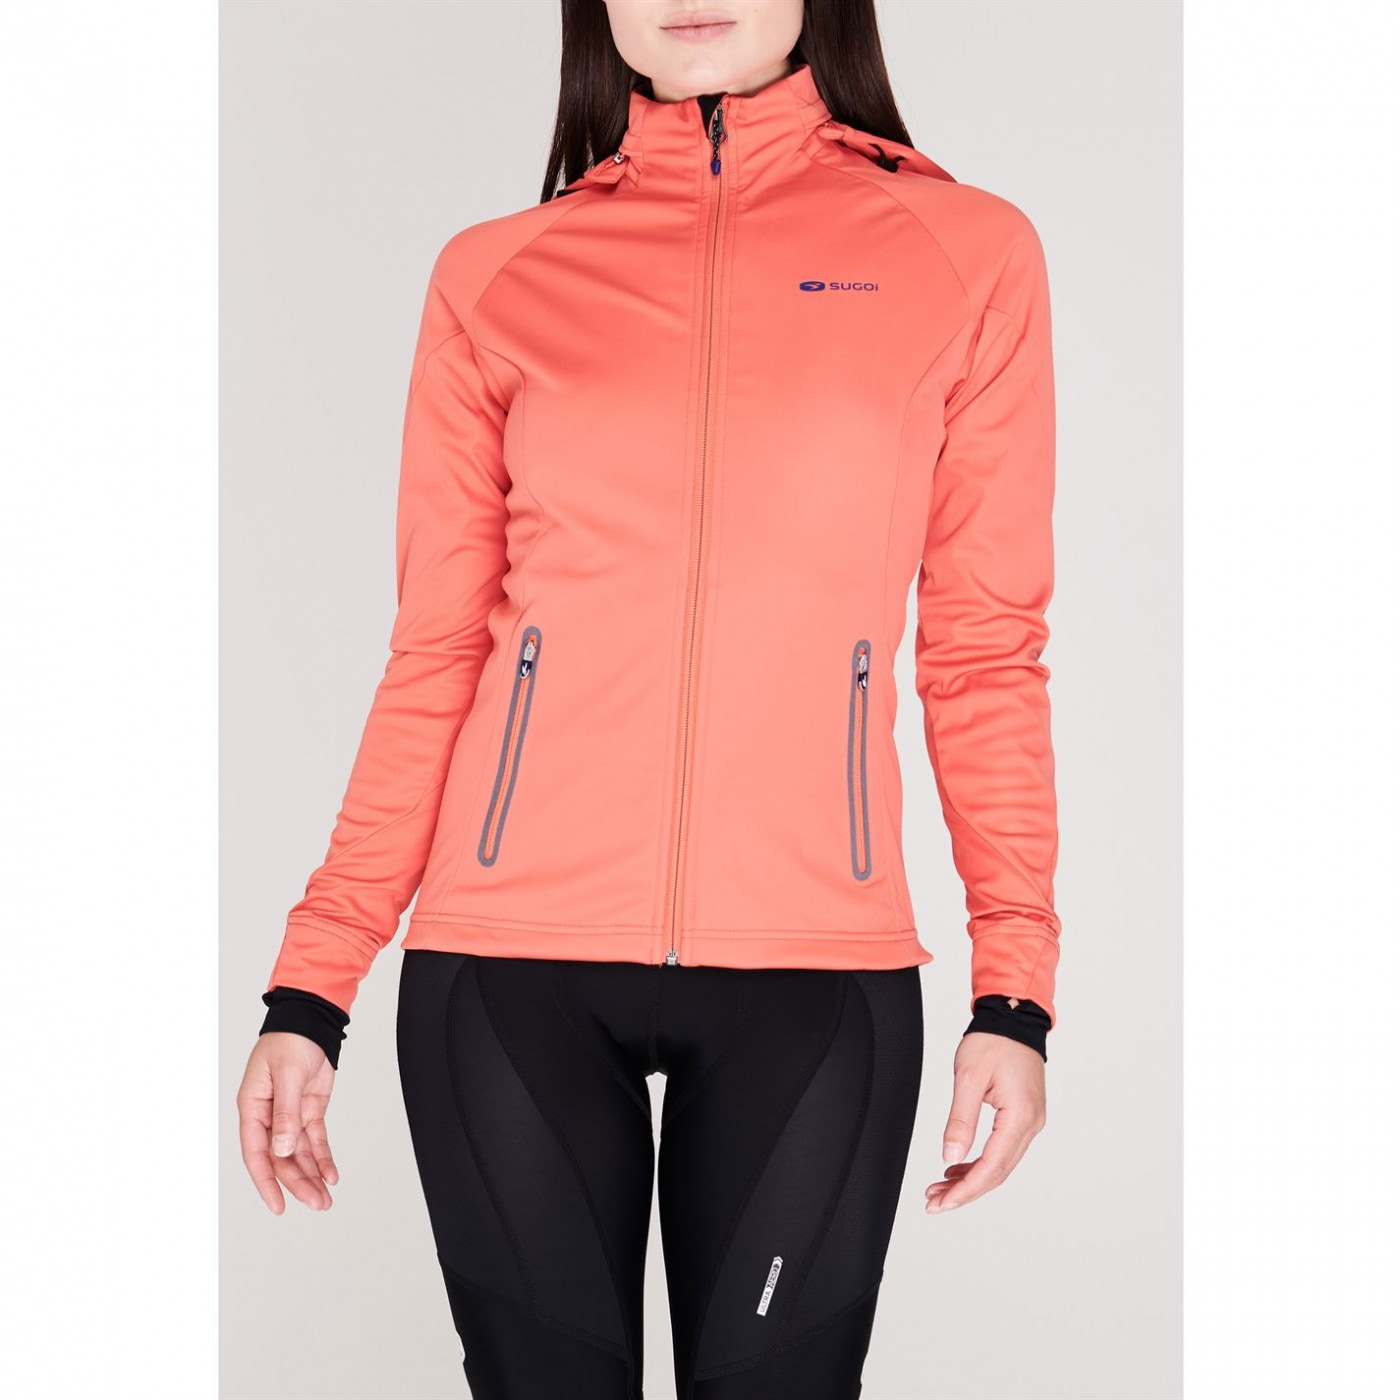 Sugoi Firewall 180 Jacket Ladies